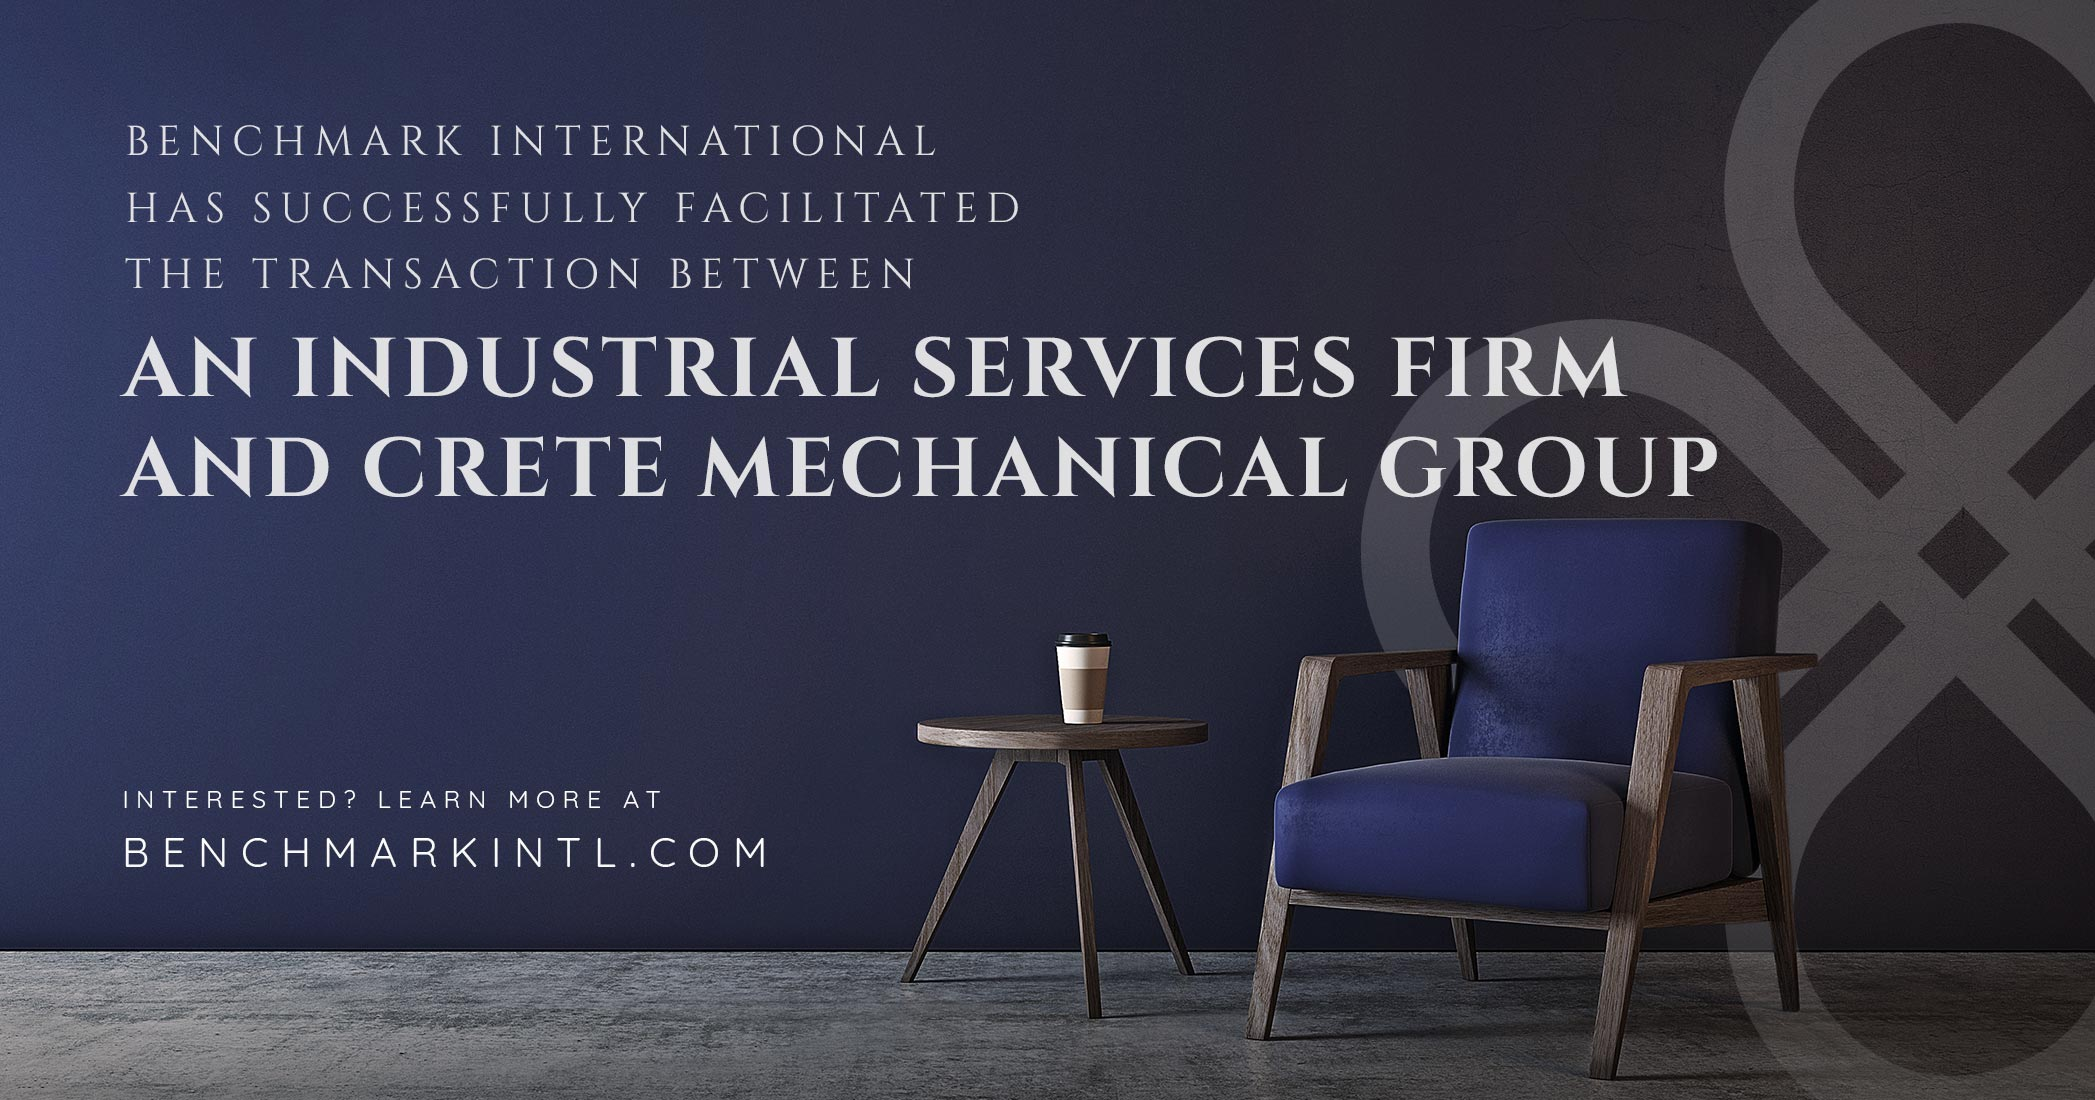 Benchmark International Successfully Facilitated the Acquisition of an Industrial Services Firm and Crete Mechanical Group